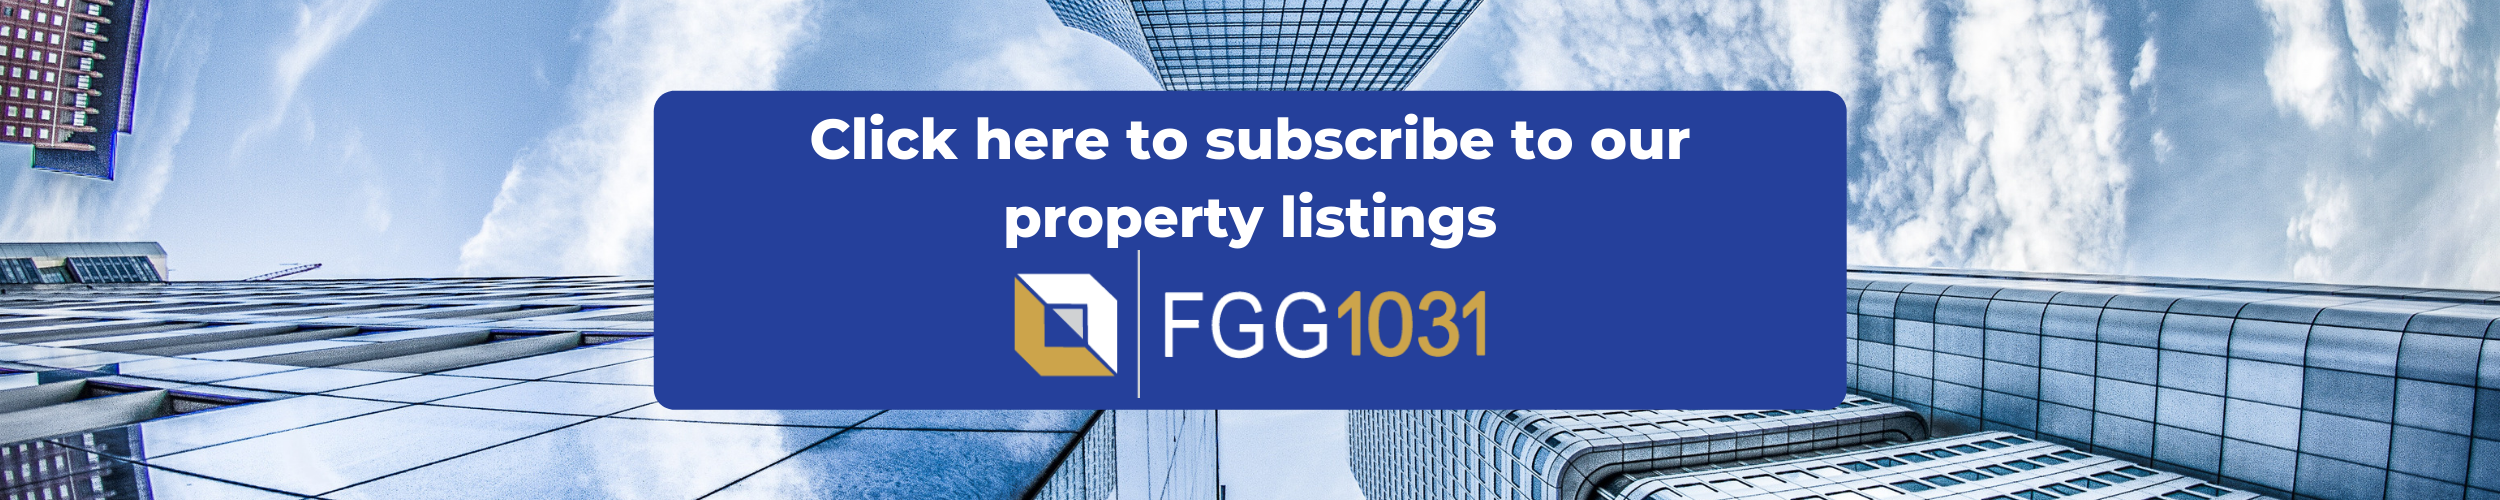 property-listings-1